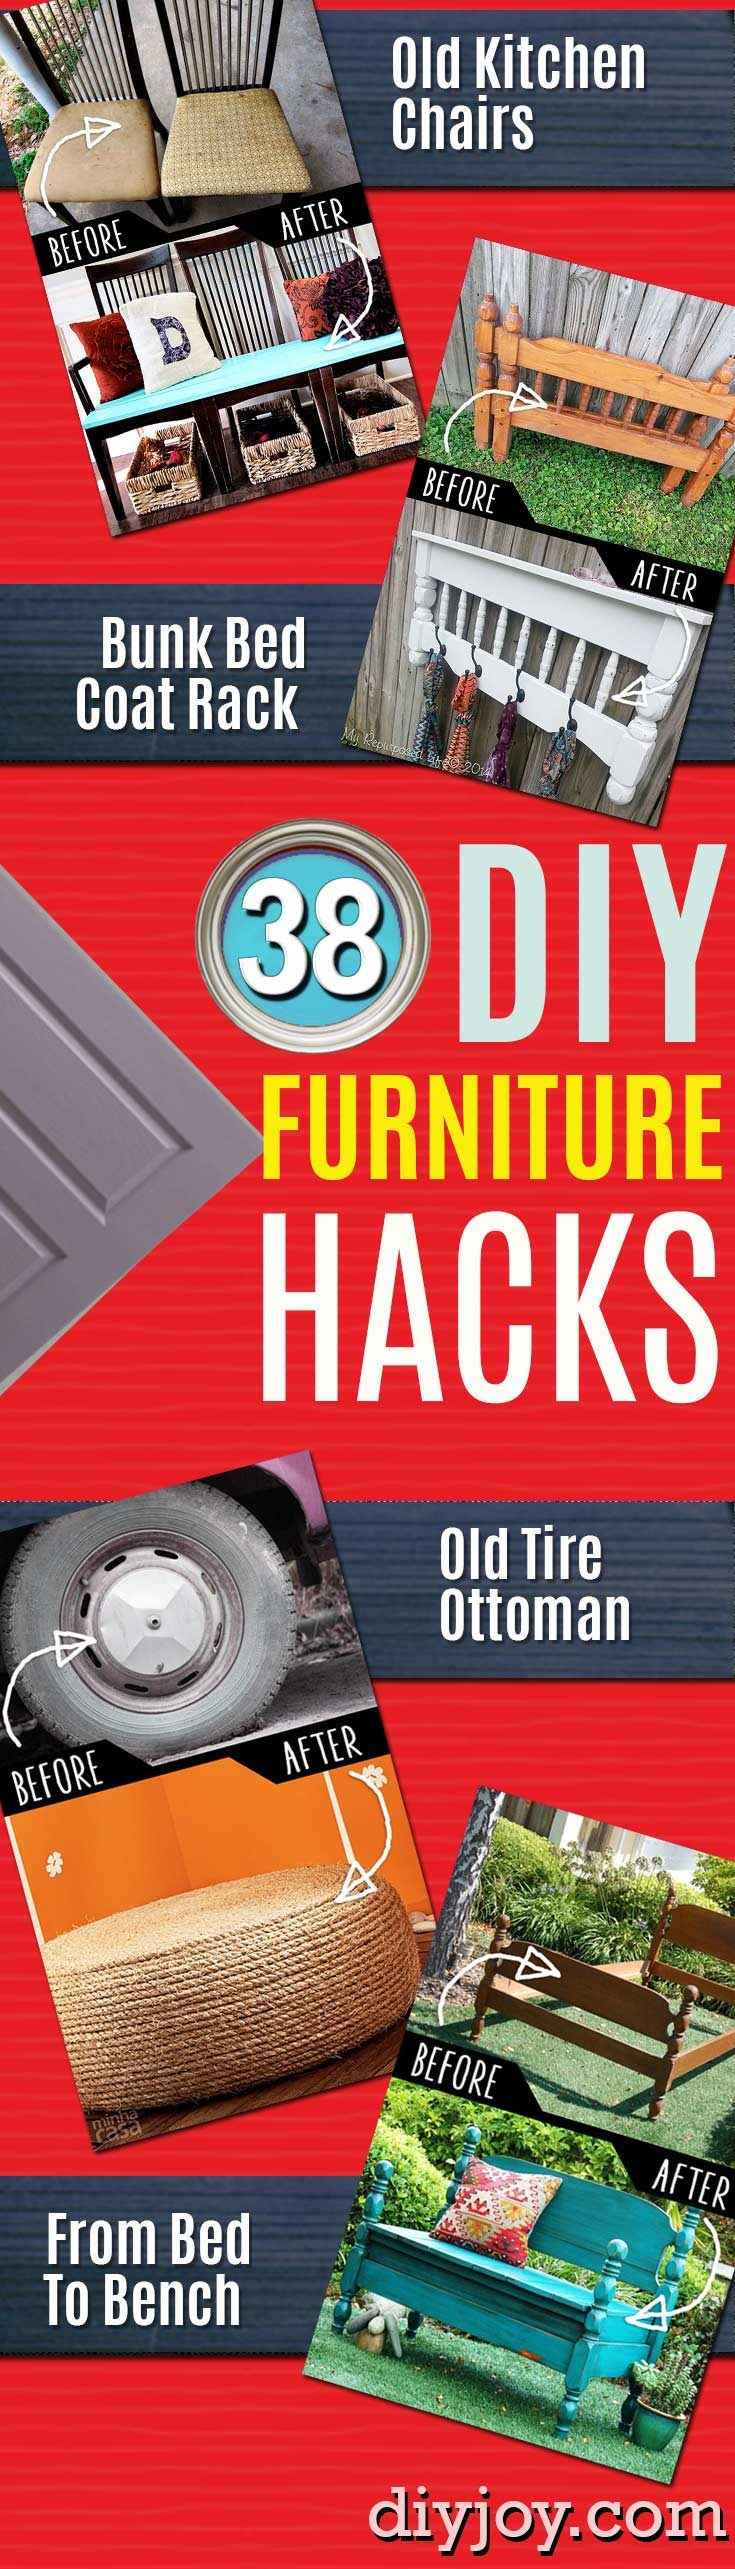 DIY Furniture Ideas - Hacks and Cool Ideas for Repurposing Stuff for Home Decor. IKEA hacks and ideas for creative decorating. - Easy Hacks for Transforming Old Furniture on The Cheap - Quick Ideas for Creative Home Decor